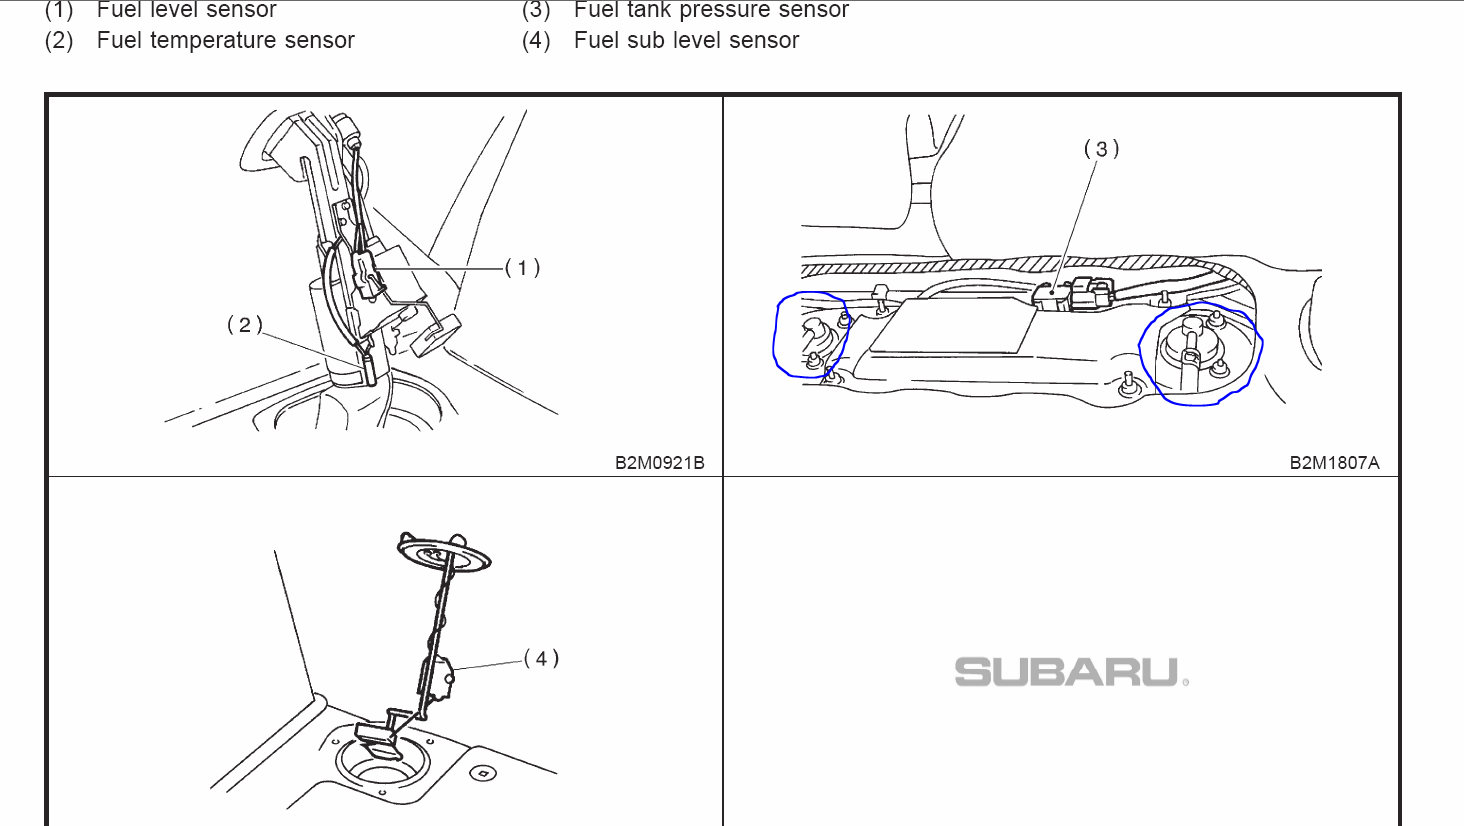 Outback Engine Diagram As Well As 1999 Subaru Legacy Outback Fuel